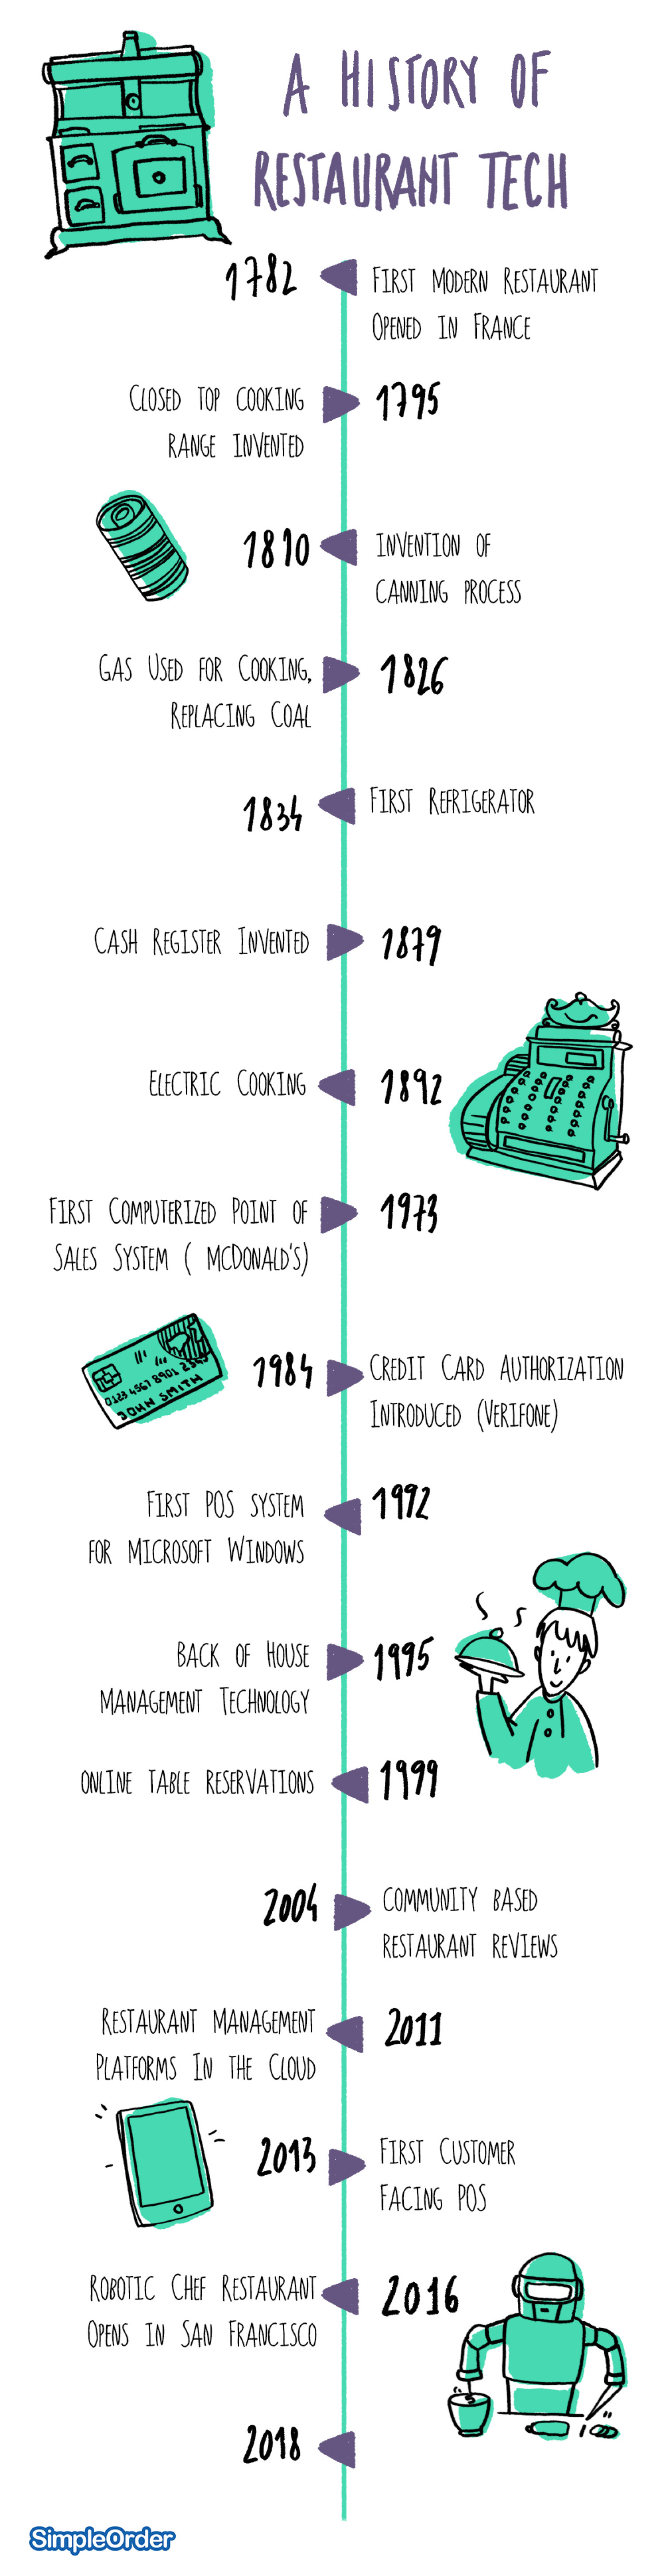 A History of Restaurant Tech  Infographic